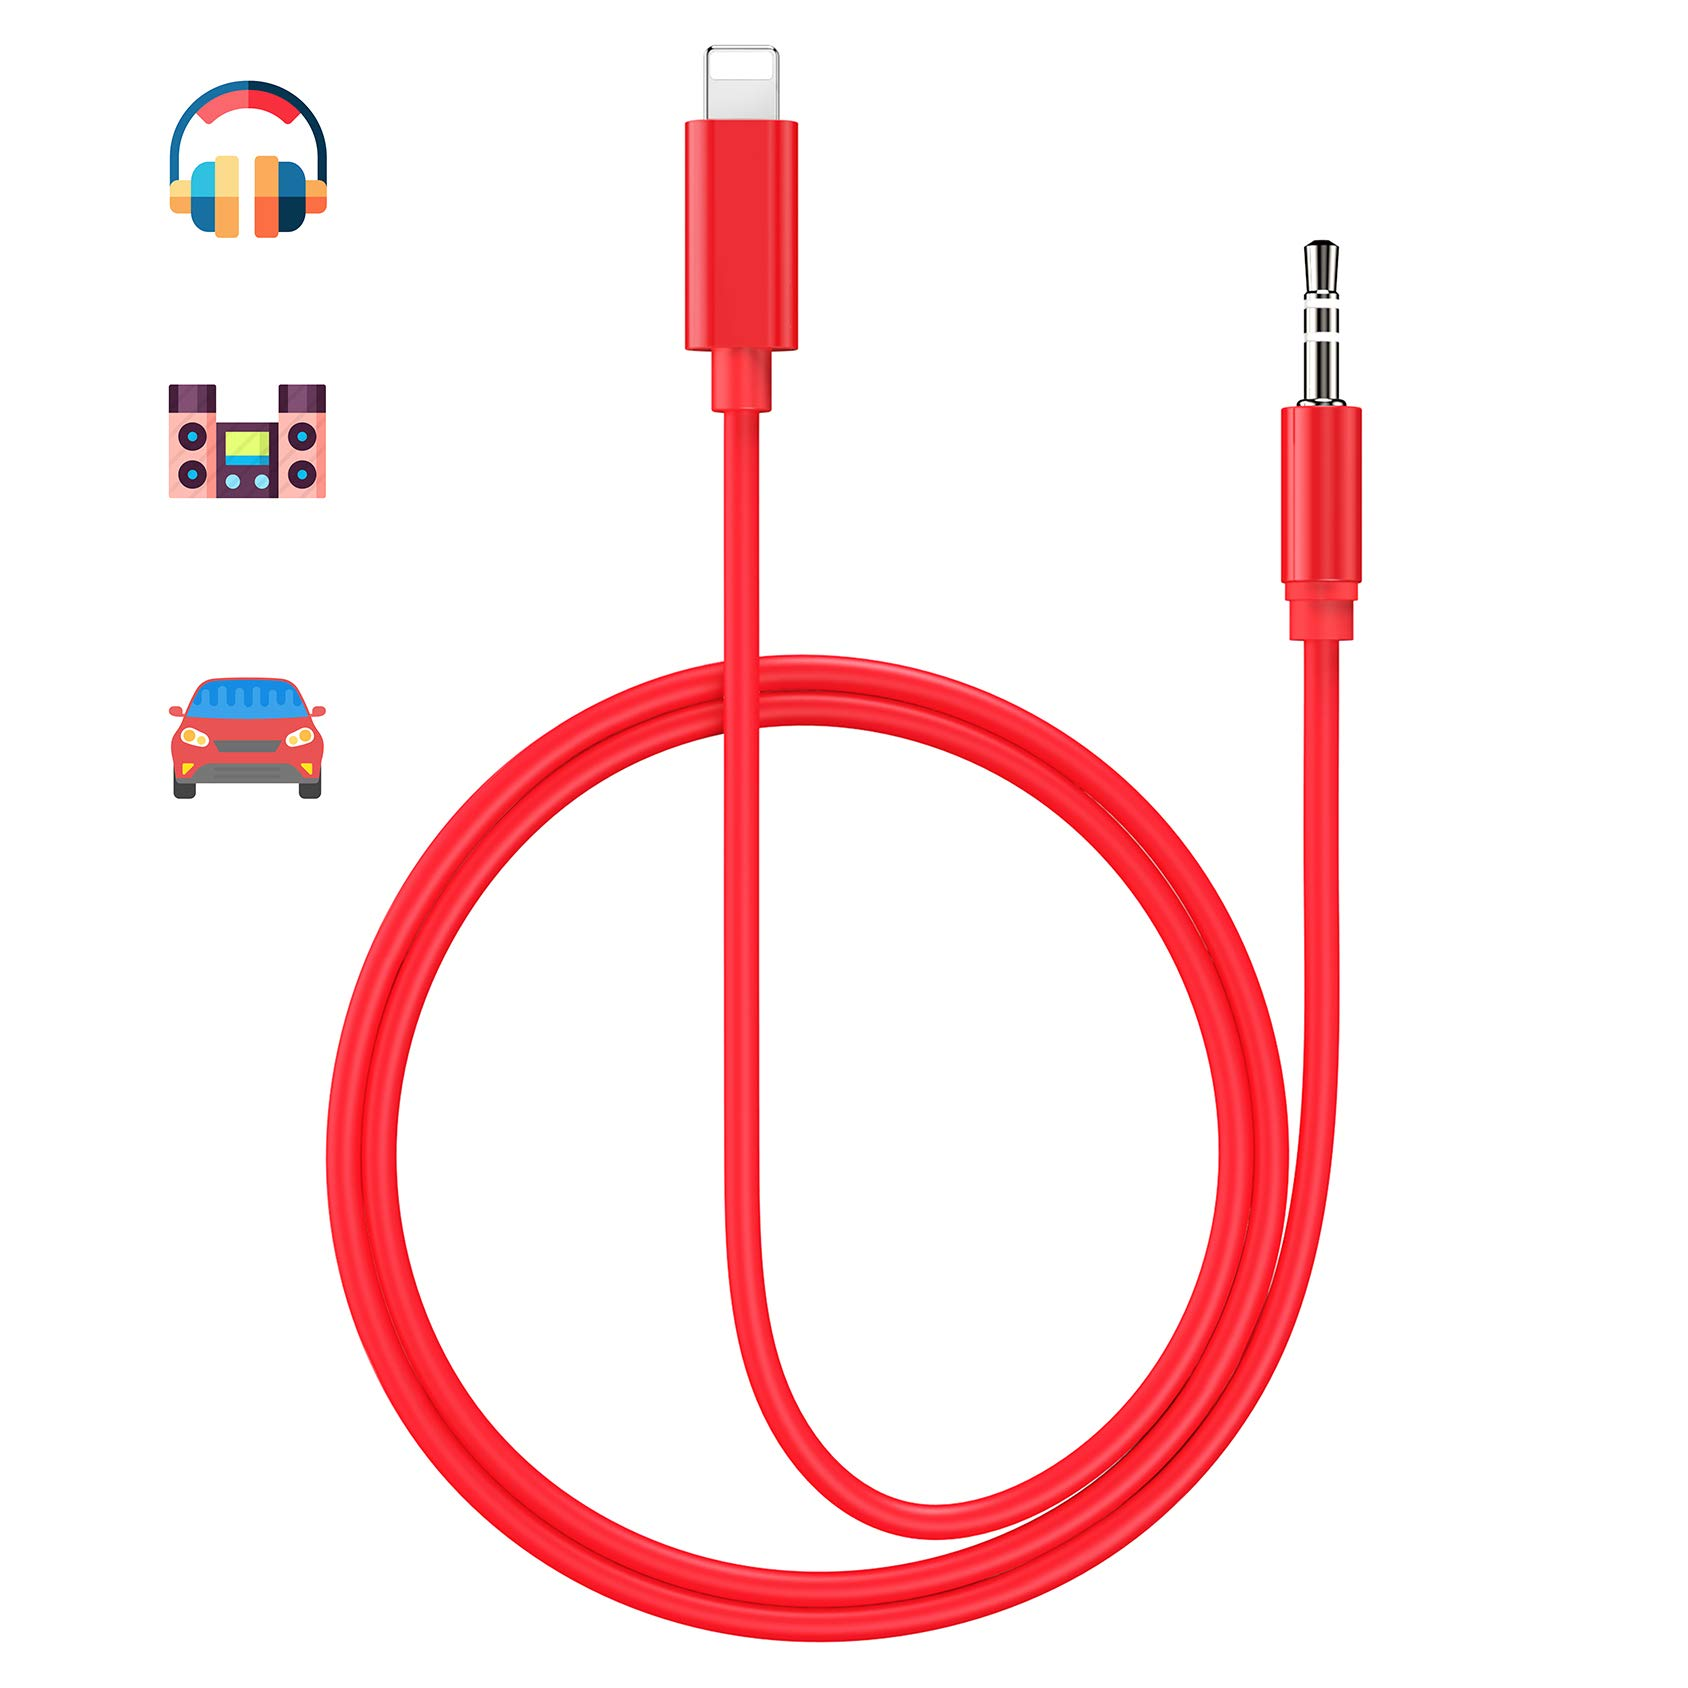 Aux Cord for iPhone 3.5mm Aux Cable for Car AUX Cable to 3.5mm Audio Cable Compatible with iPhone Xs/XS Max/X/8/8Plus/7/7Plus for Car Stereo/Speaker/Headphone and More Support All iOS System - Red by turelar